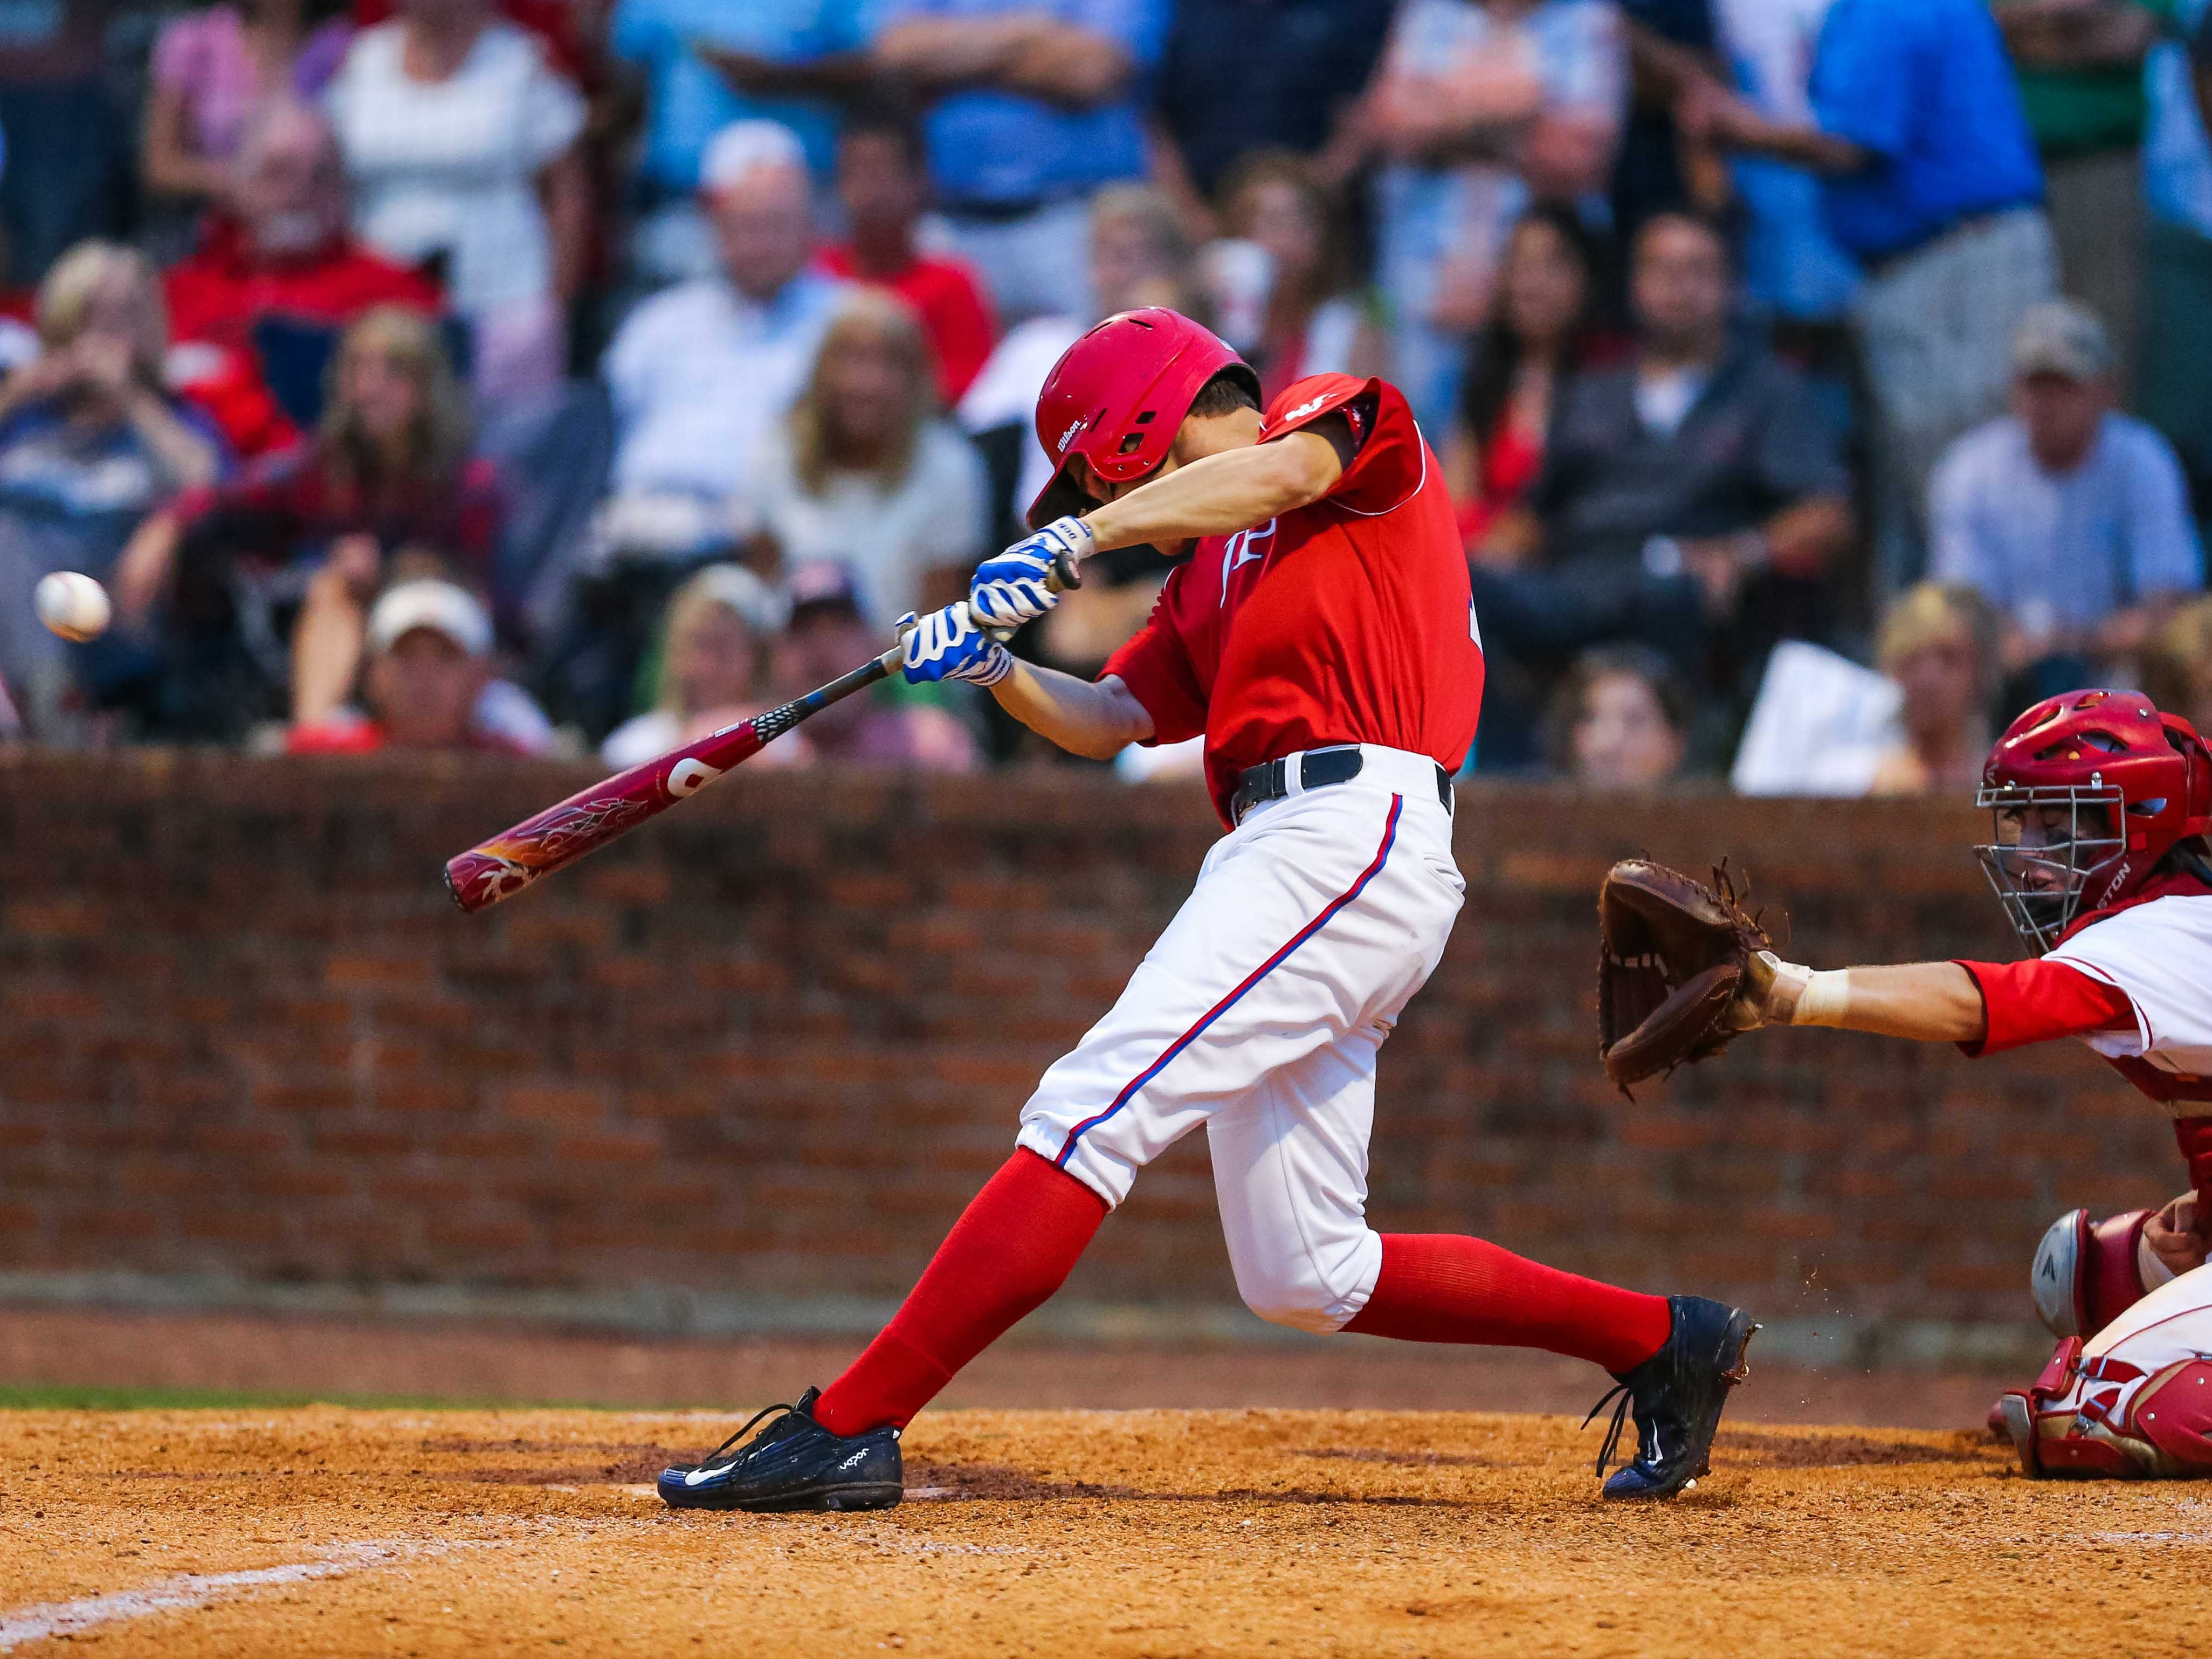 Jackson Prep's Jake Mangum hits a run-scoring double against MRA during the MAIS AAA Division 1 series opener at MRA.